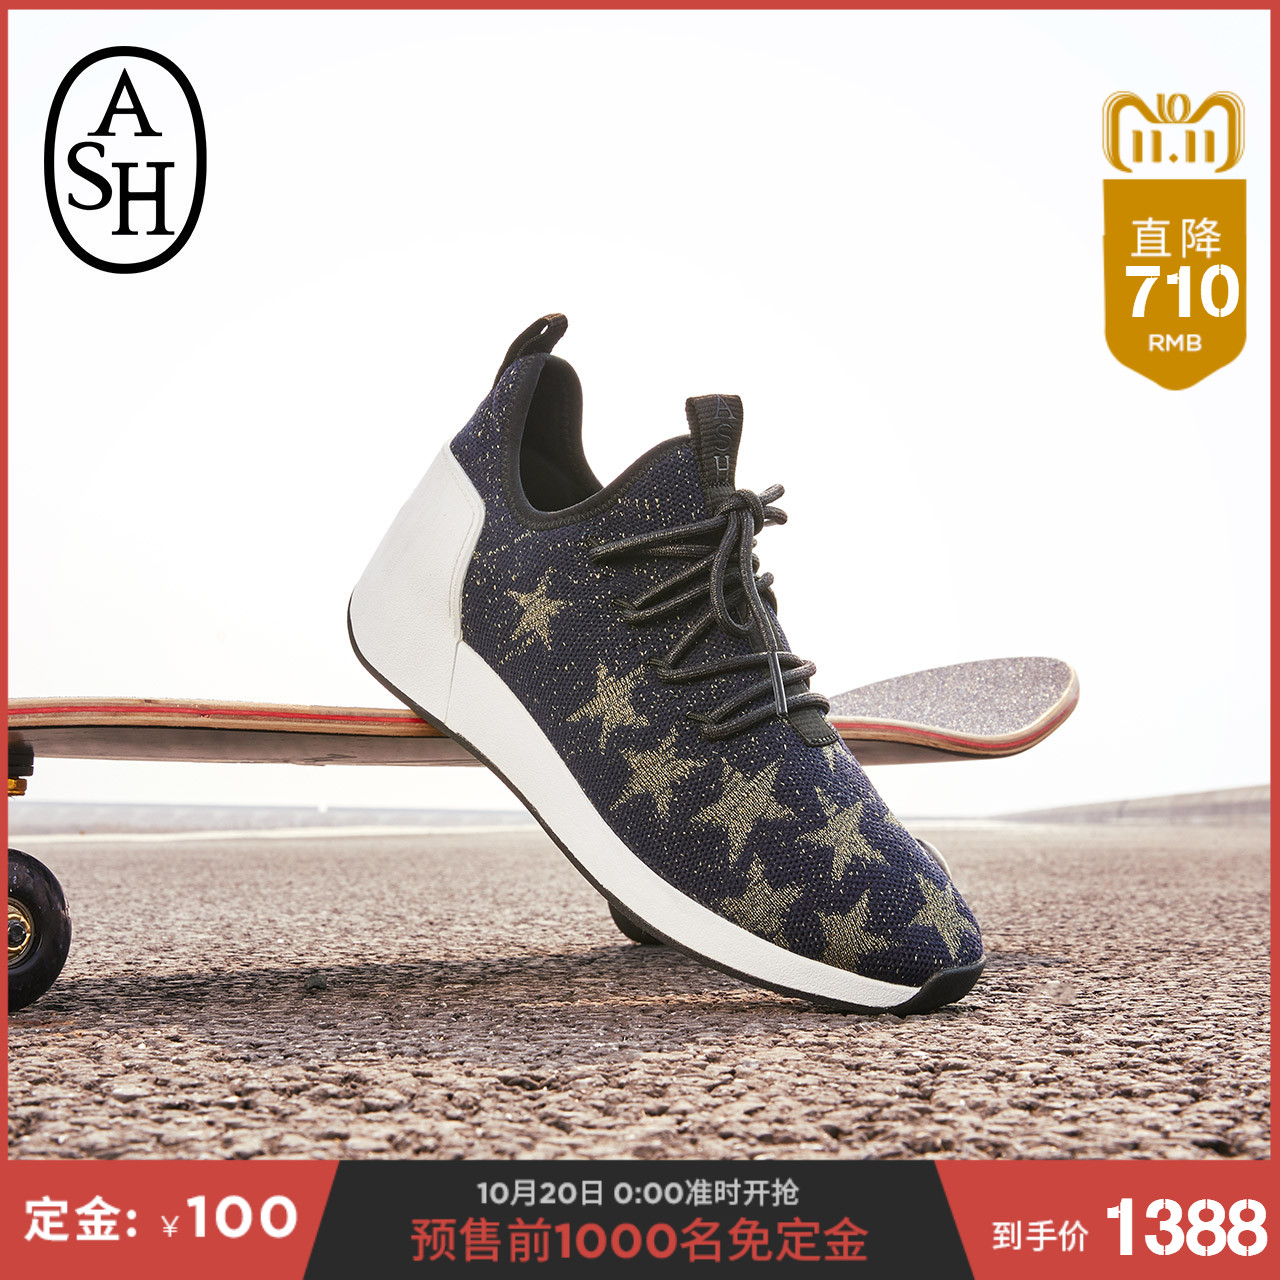 [Double 11 pre-sale] ASH women's shoes 2018 autumn new JAGUAR series fashion stars woven sneakers